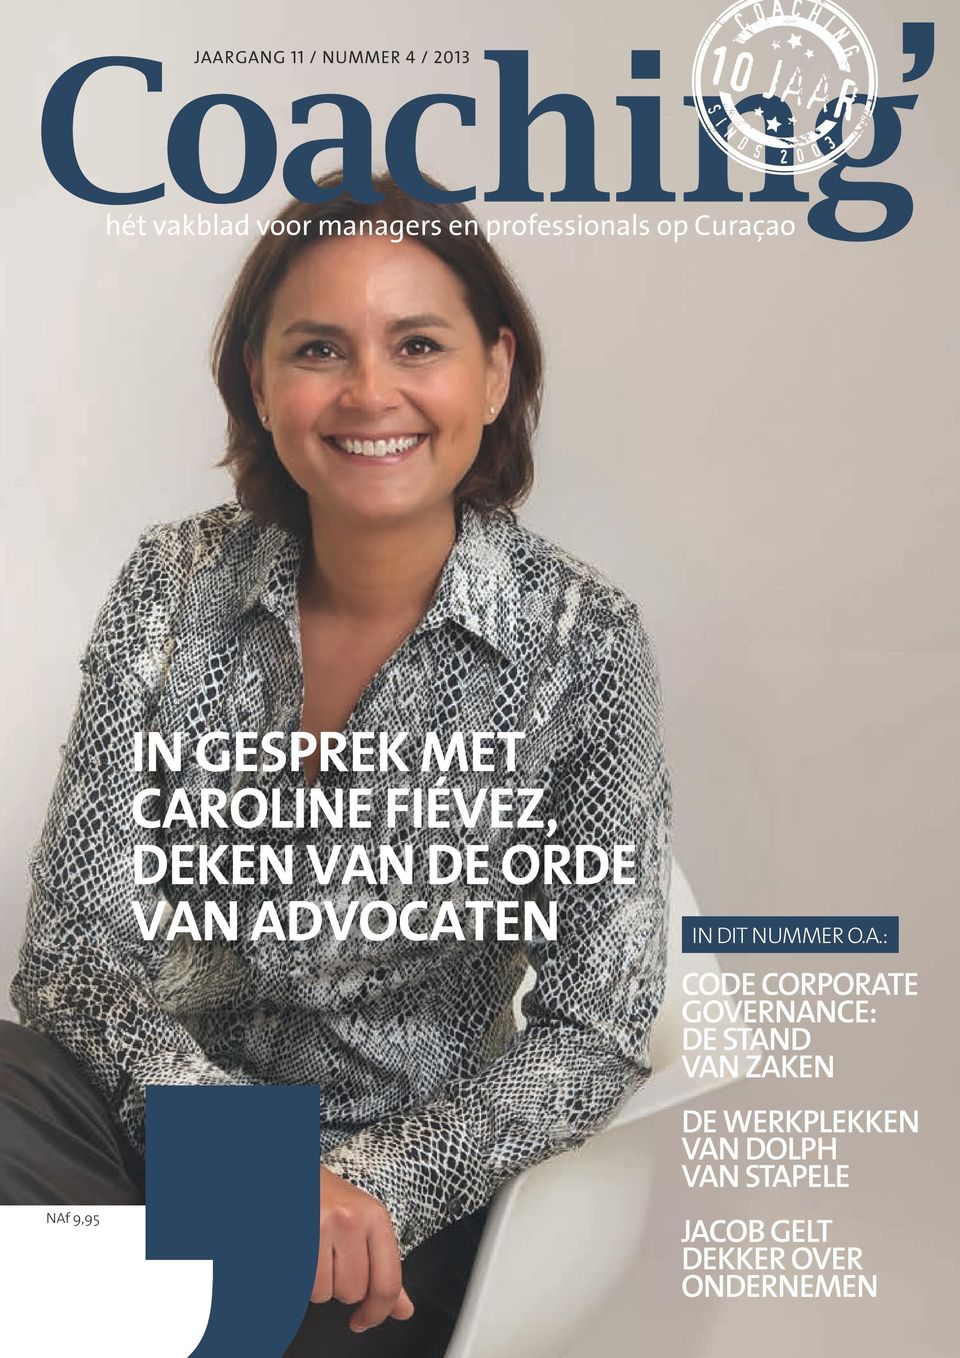 ADVOCATEN IN DIT NUMMER O.A.: CODE CORPORATE GOVERNANCE: DE STAND VAN